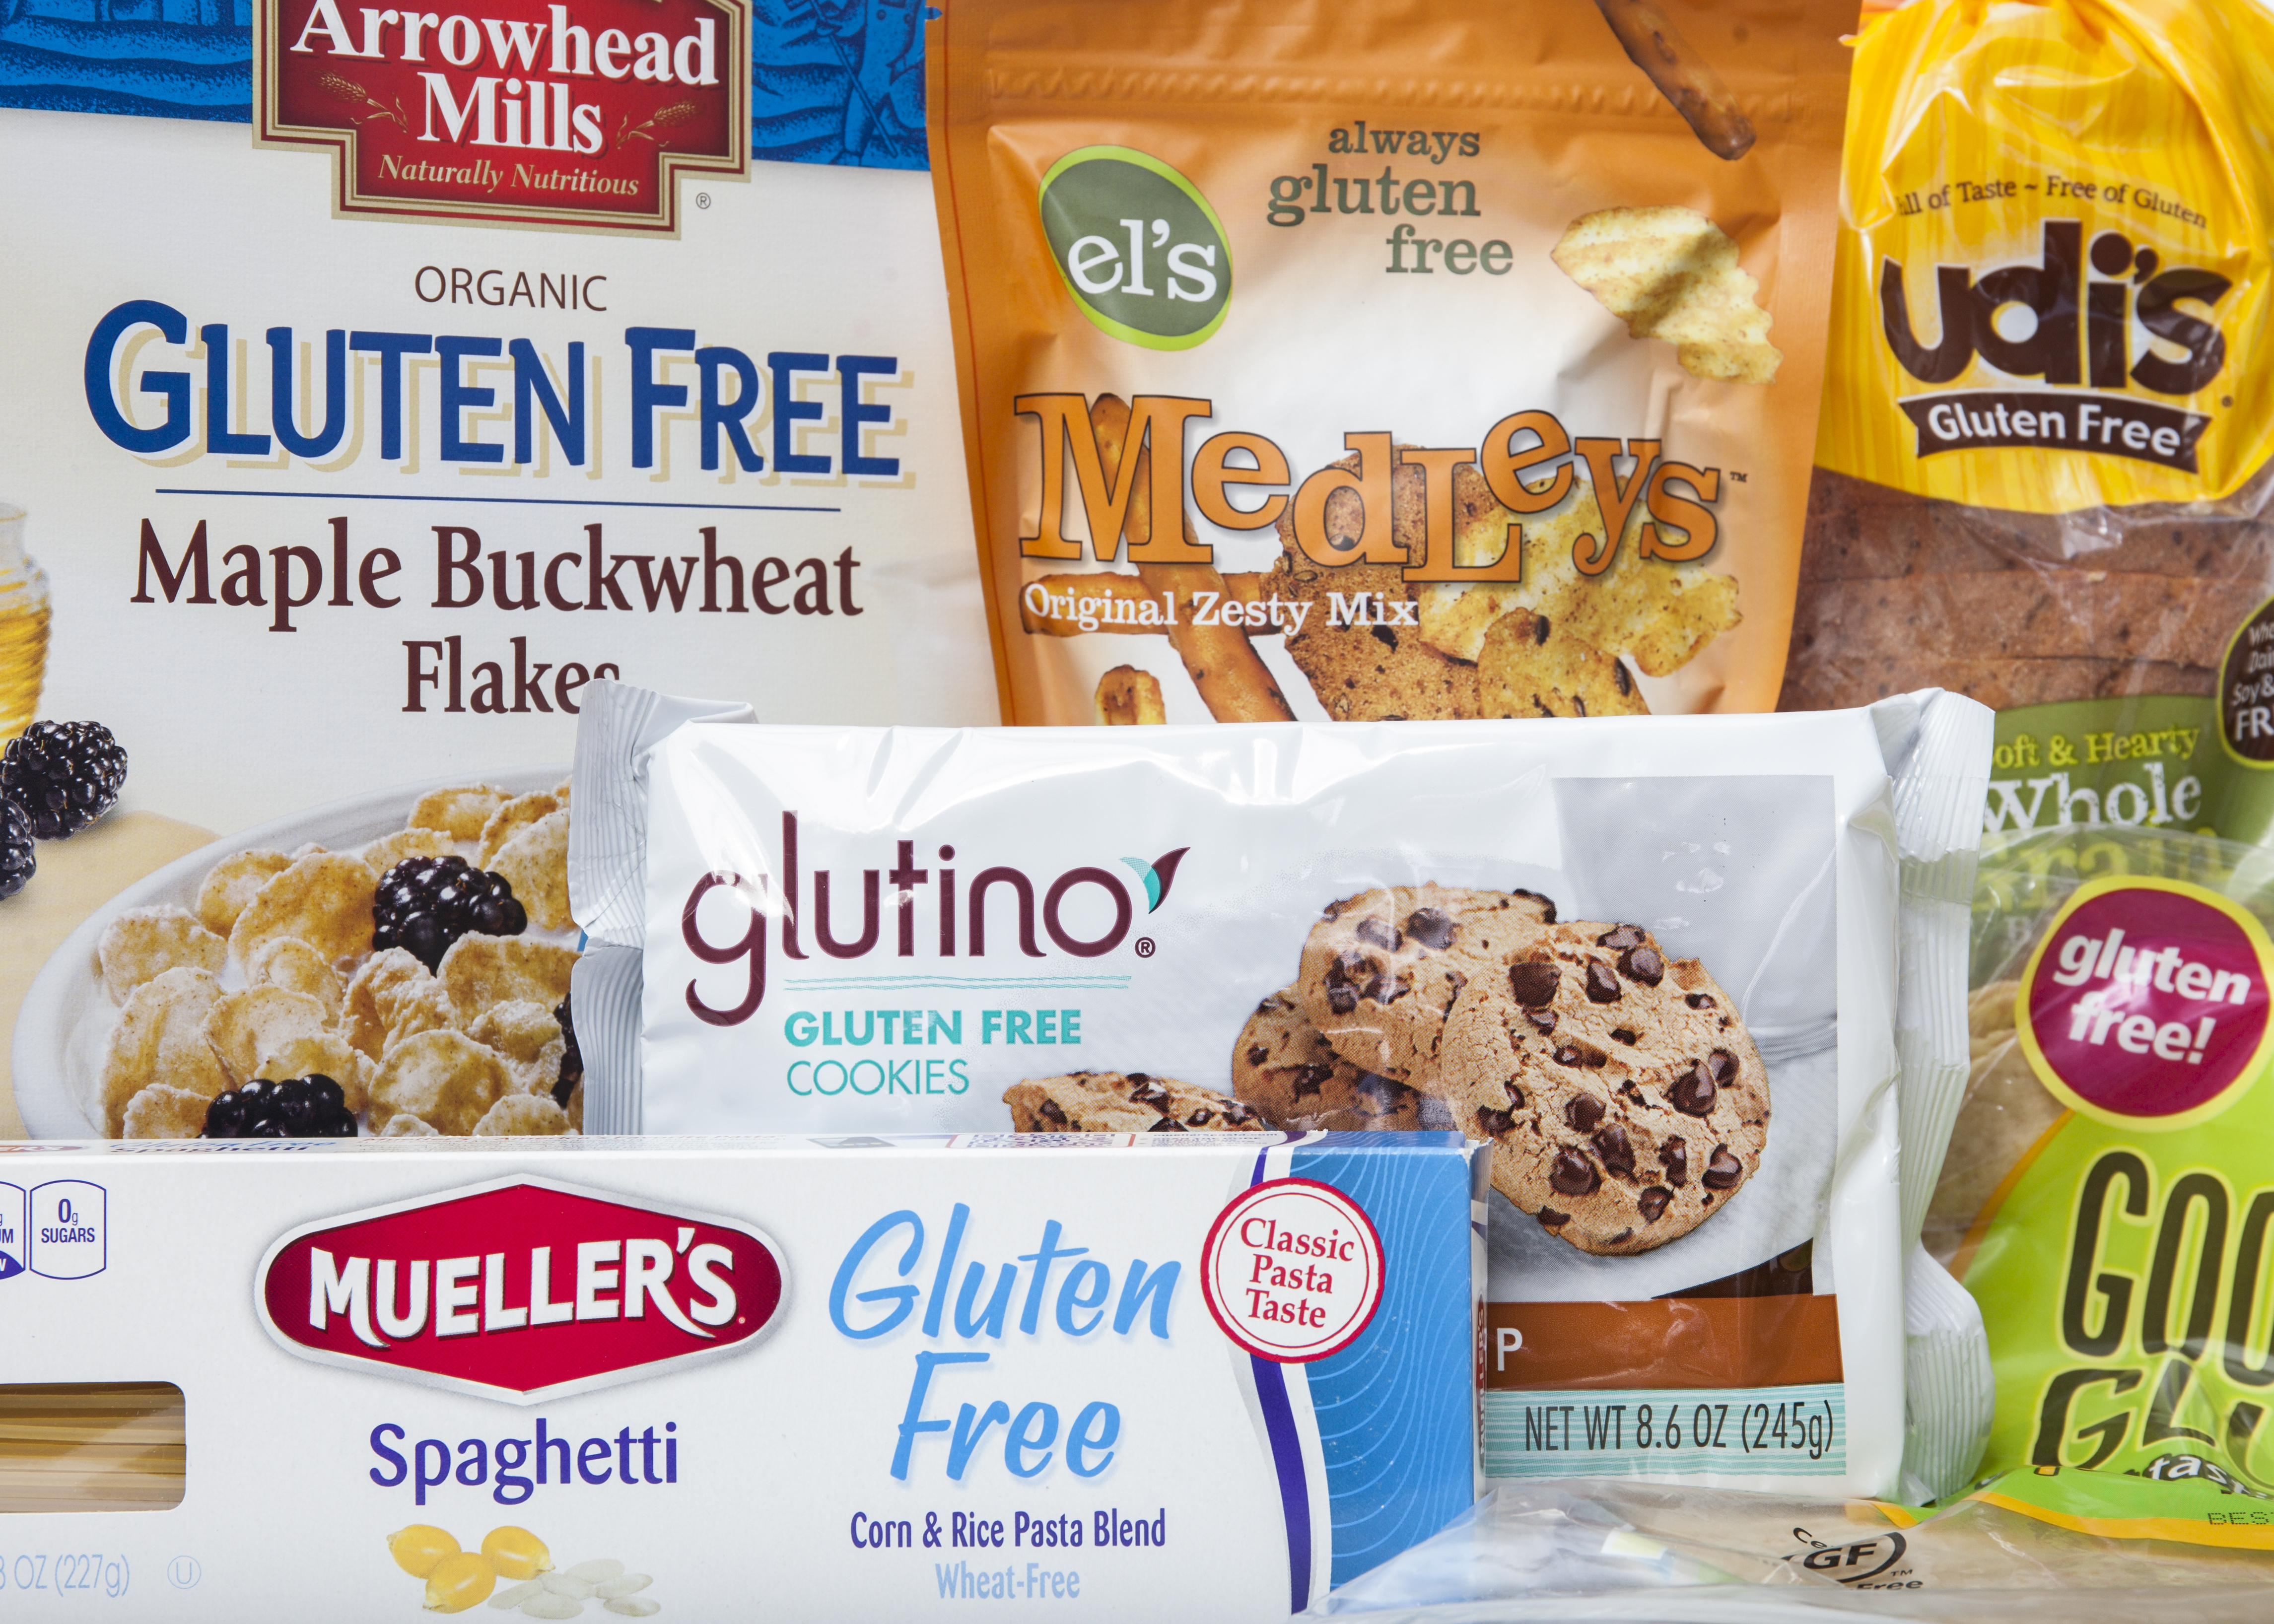 Gluten free food products.